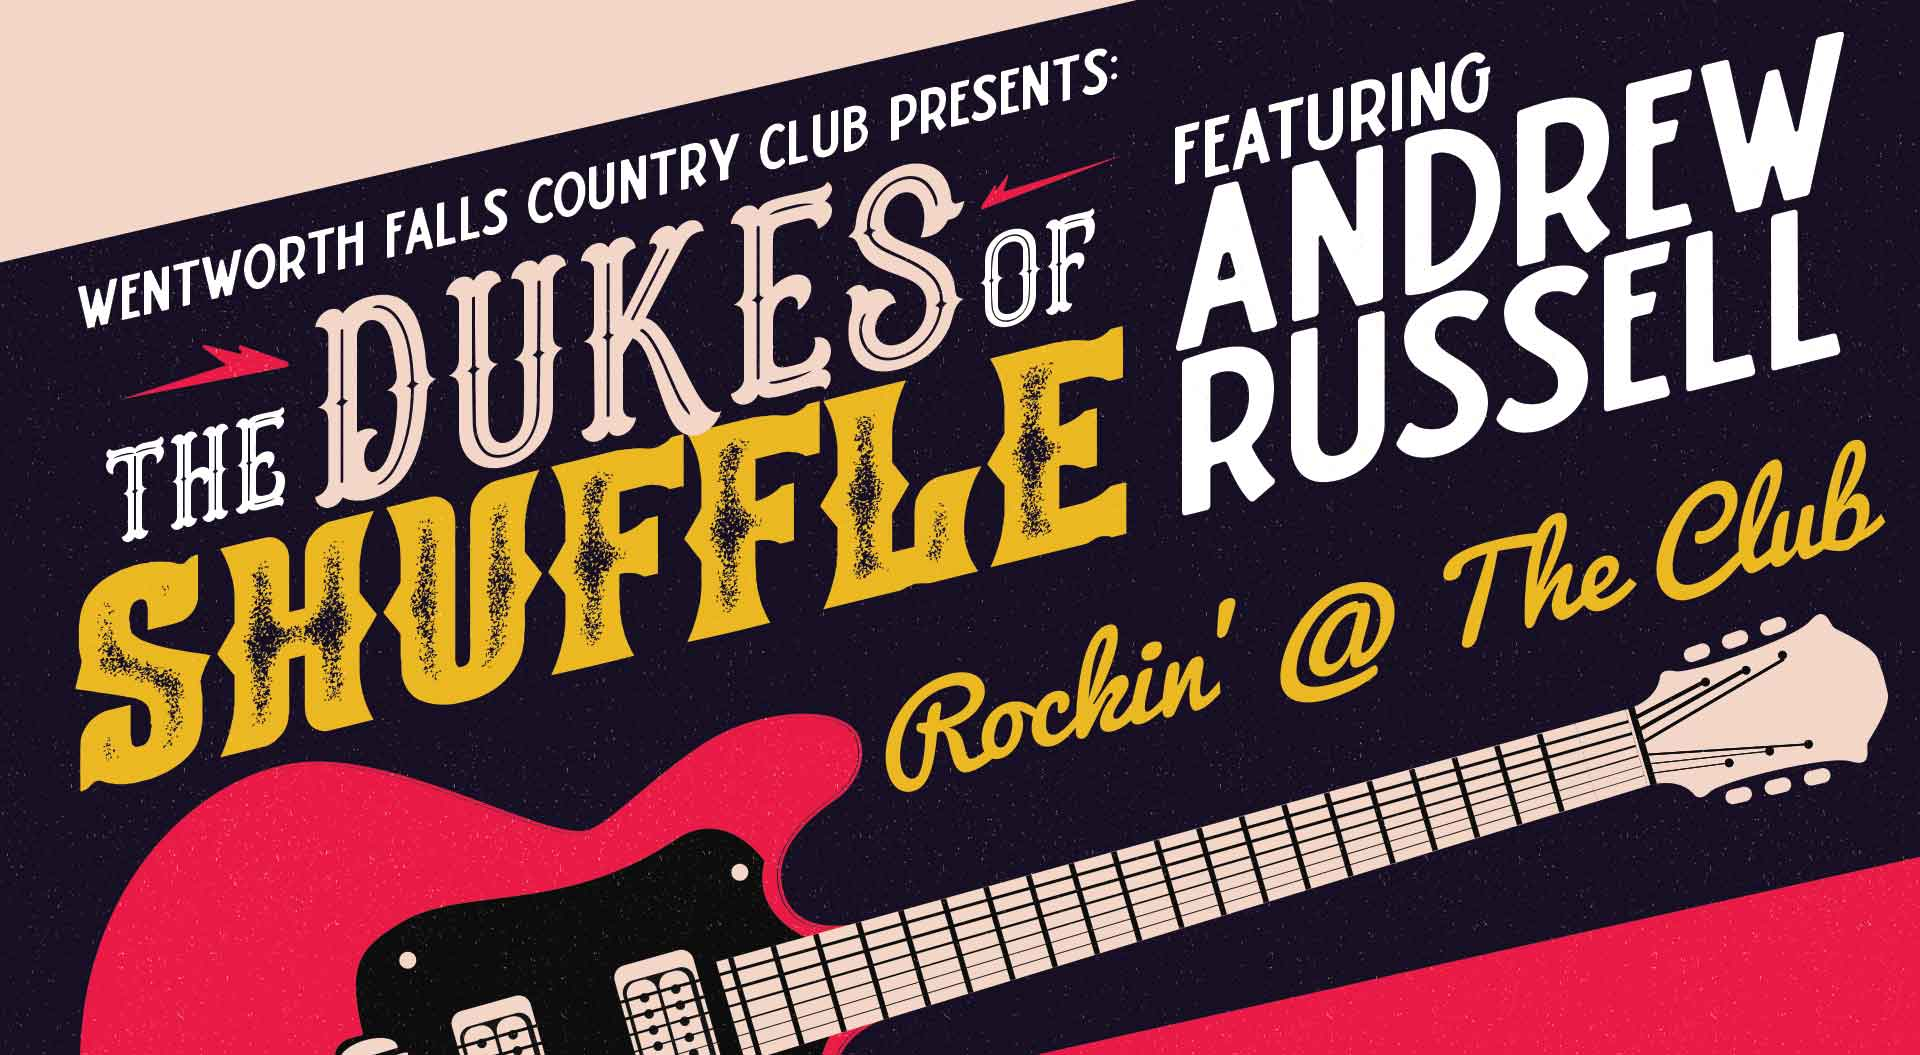 The Dukes of Shuffle: Rockin' at The Club